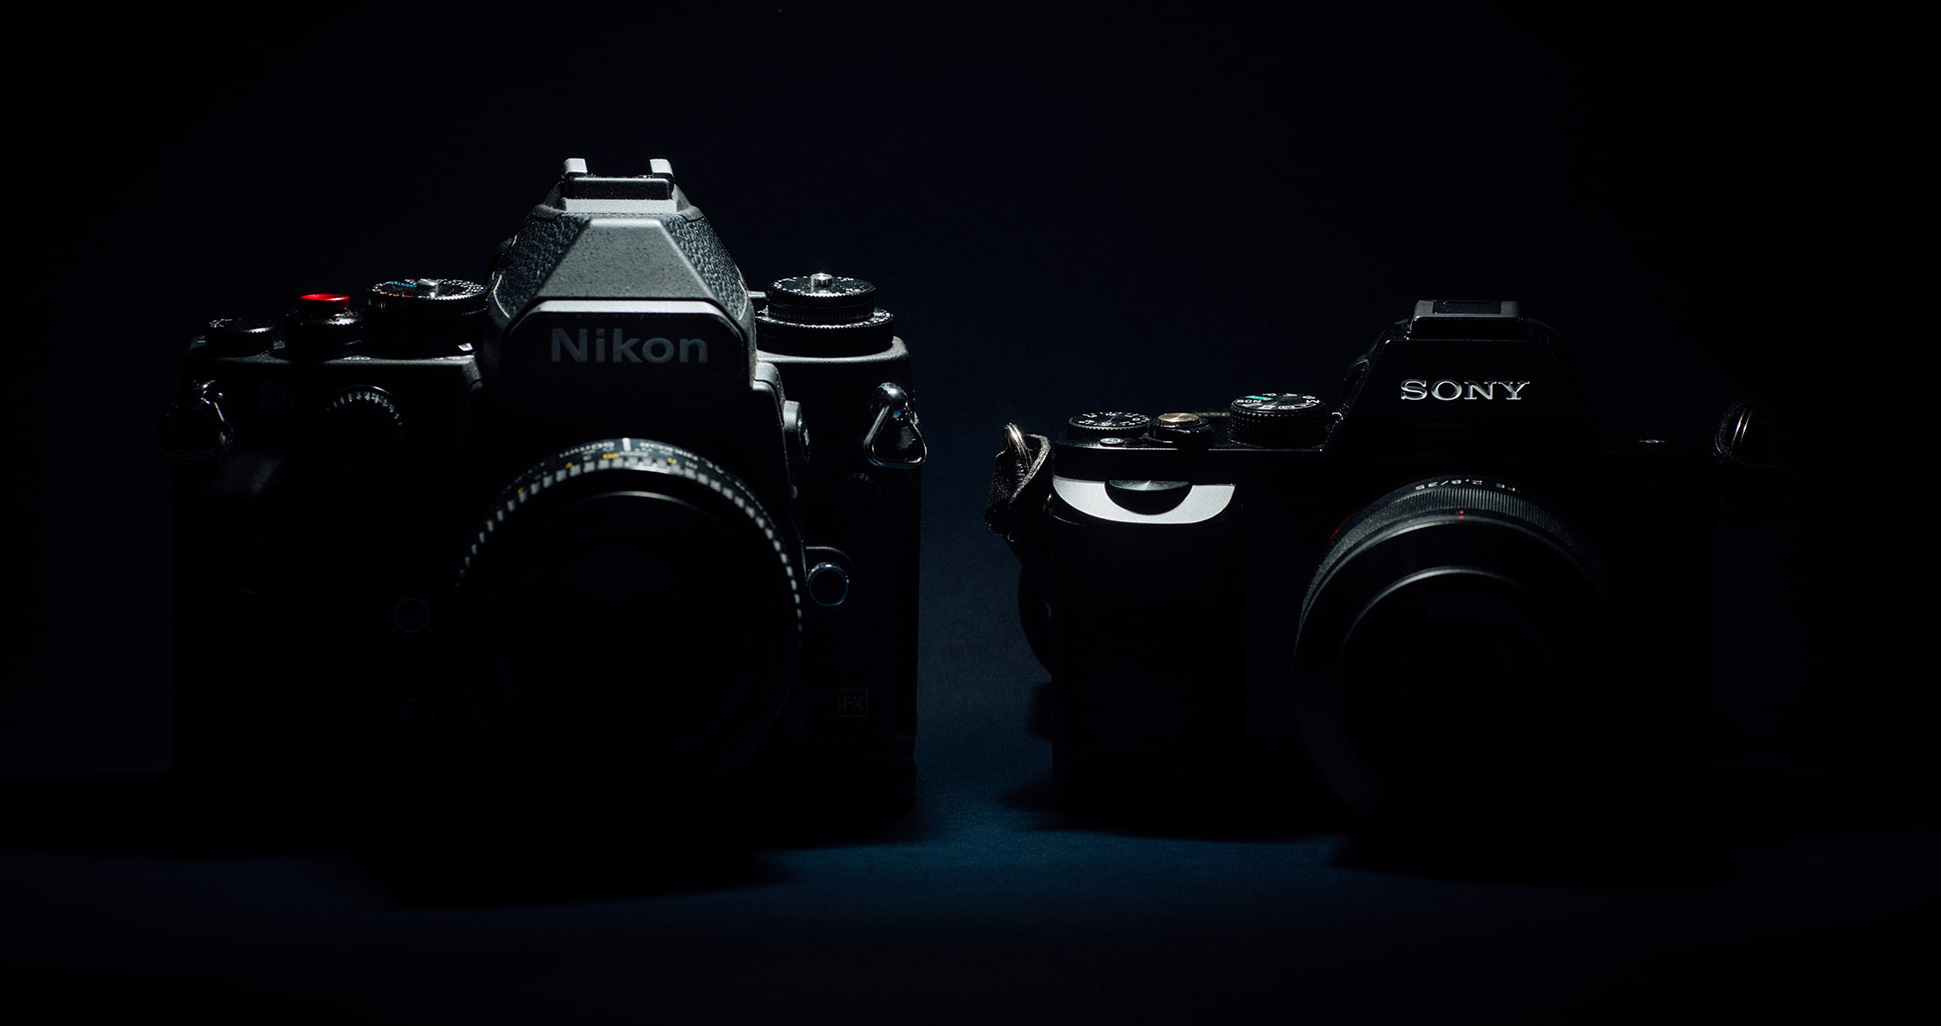 nikon-dslr-vs-sony-mirrorless.jpg